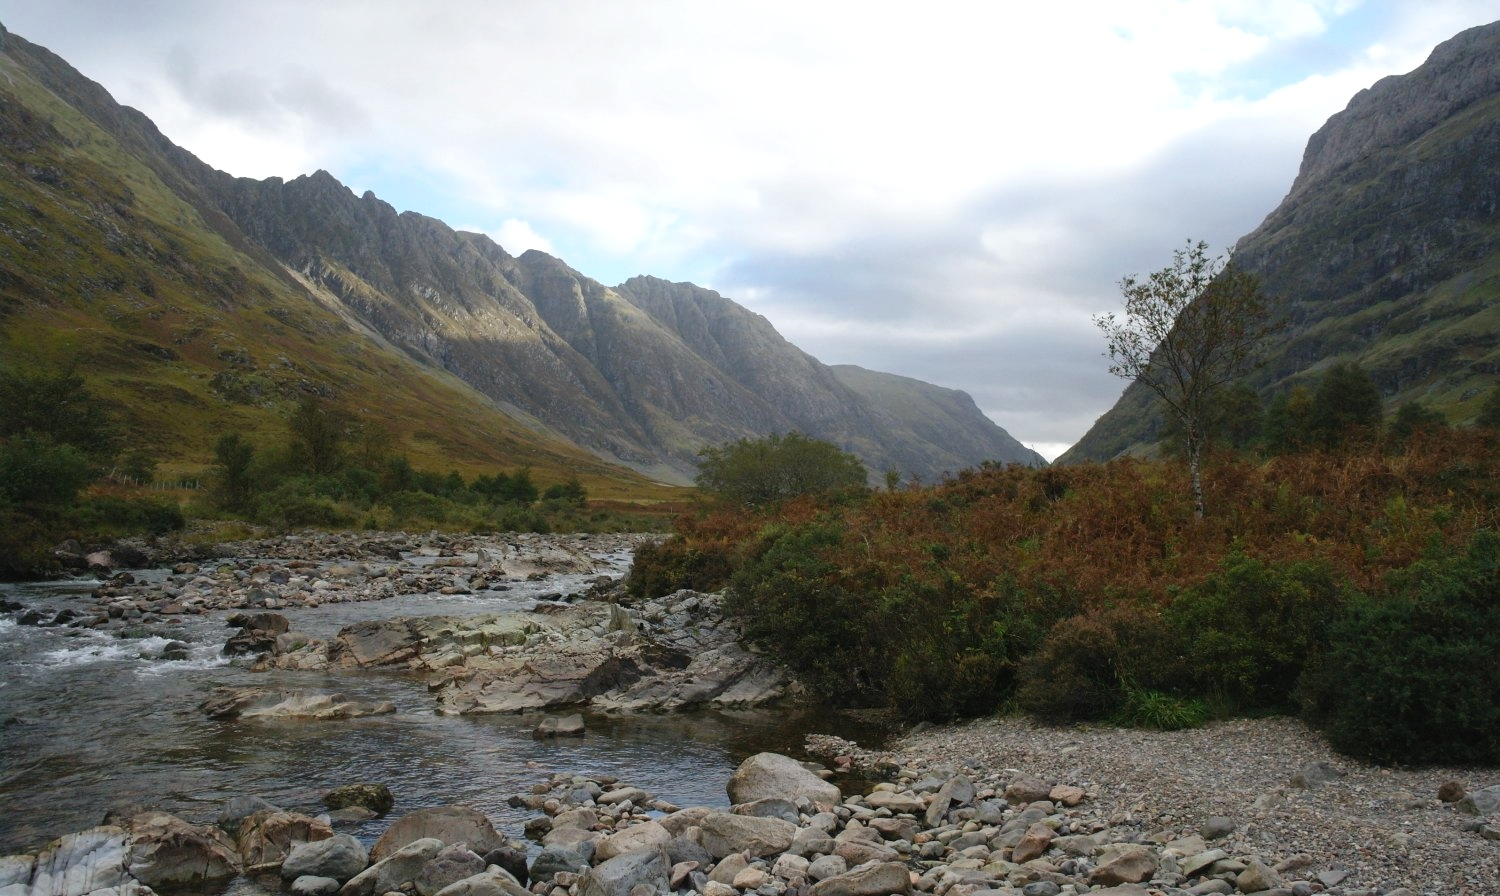 See? Glen Coe is still impressive when it's gloomy. Just a single shaft of sunlight in this October picture .